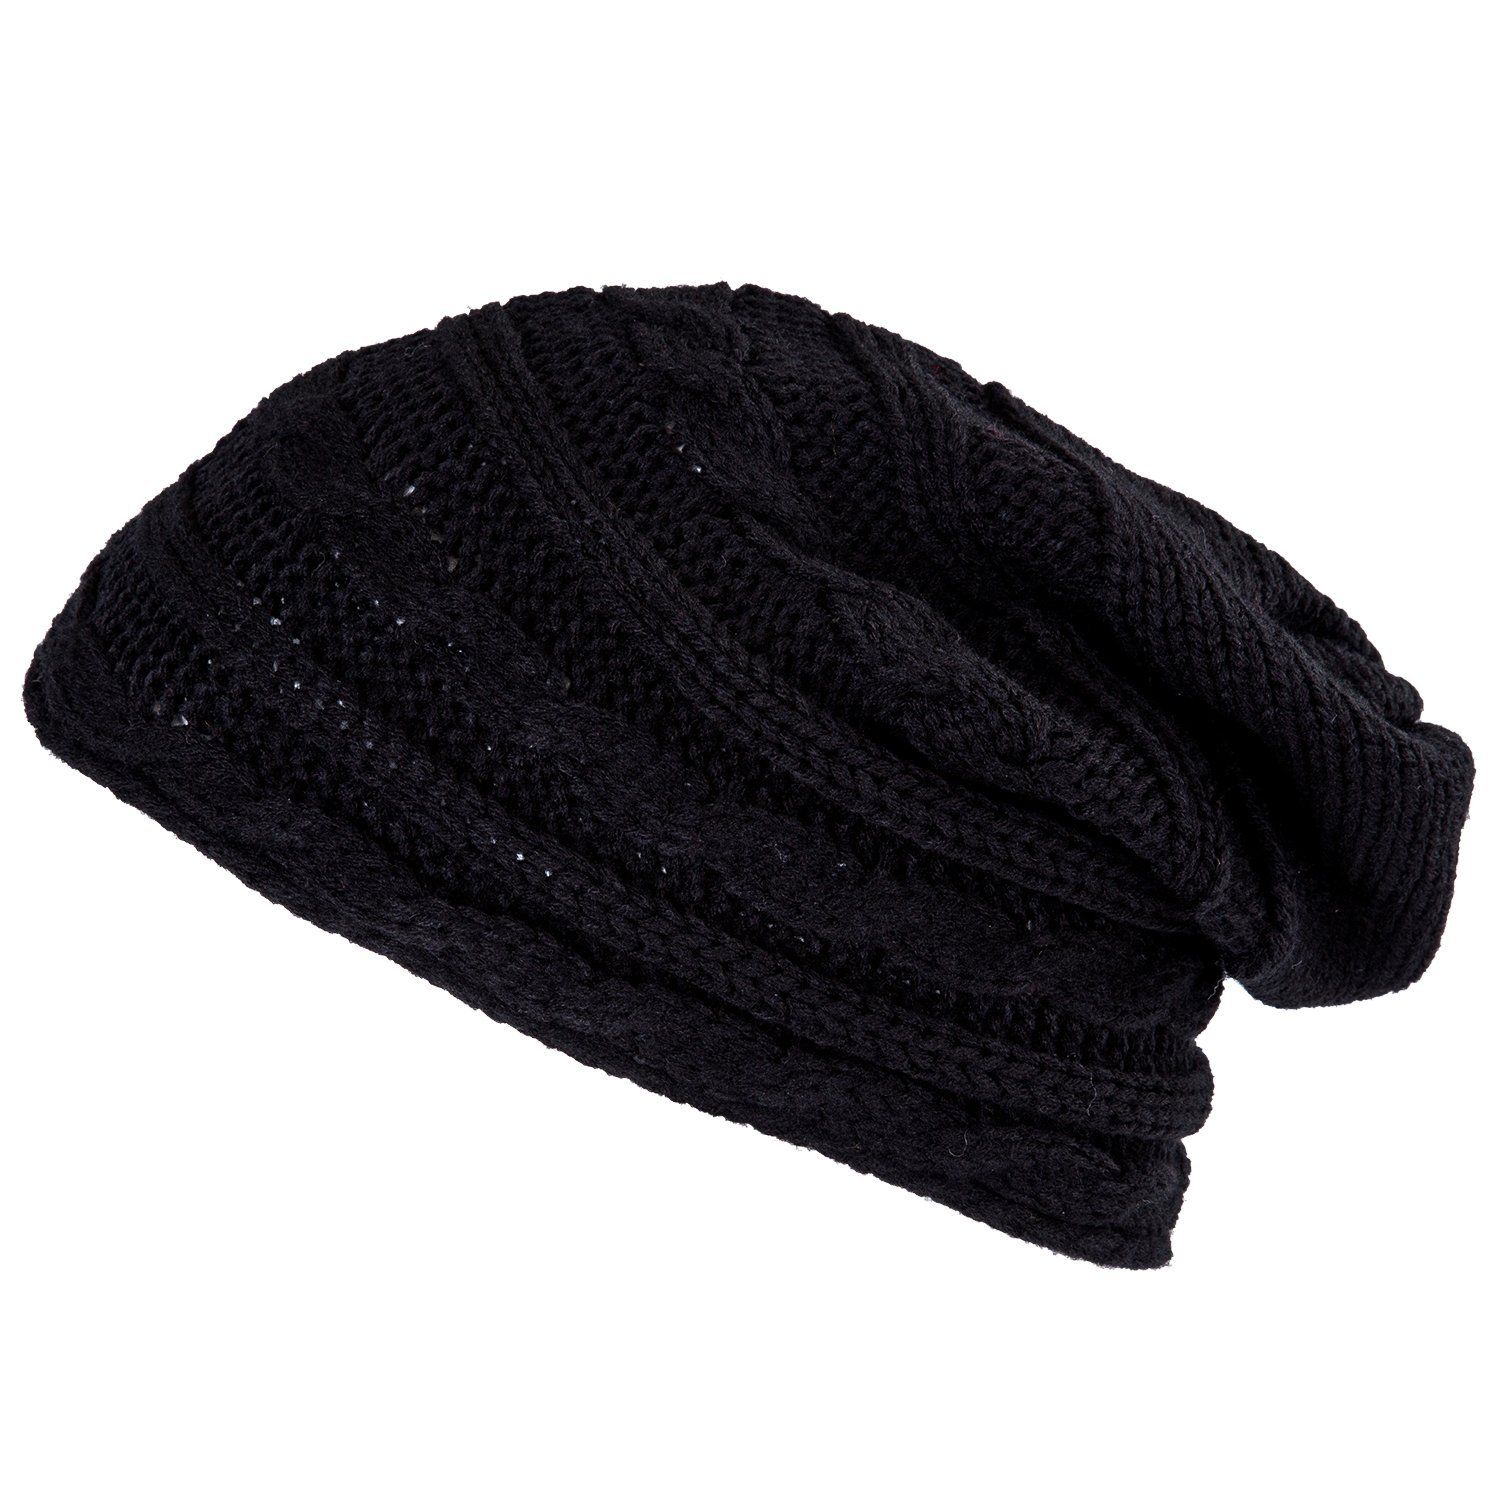 SODIAL(TM) Winter Black Oversized Cable Knit Baggy Beanie Slouch Hat Unisex  Fashion at Amazon Women s Clothing store  Cold Weather Hats 3ef8040110e1